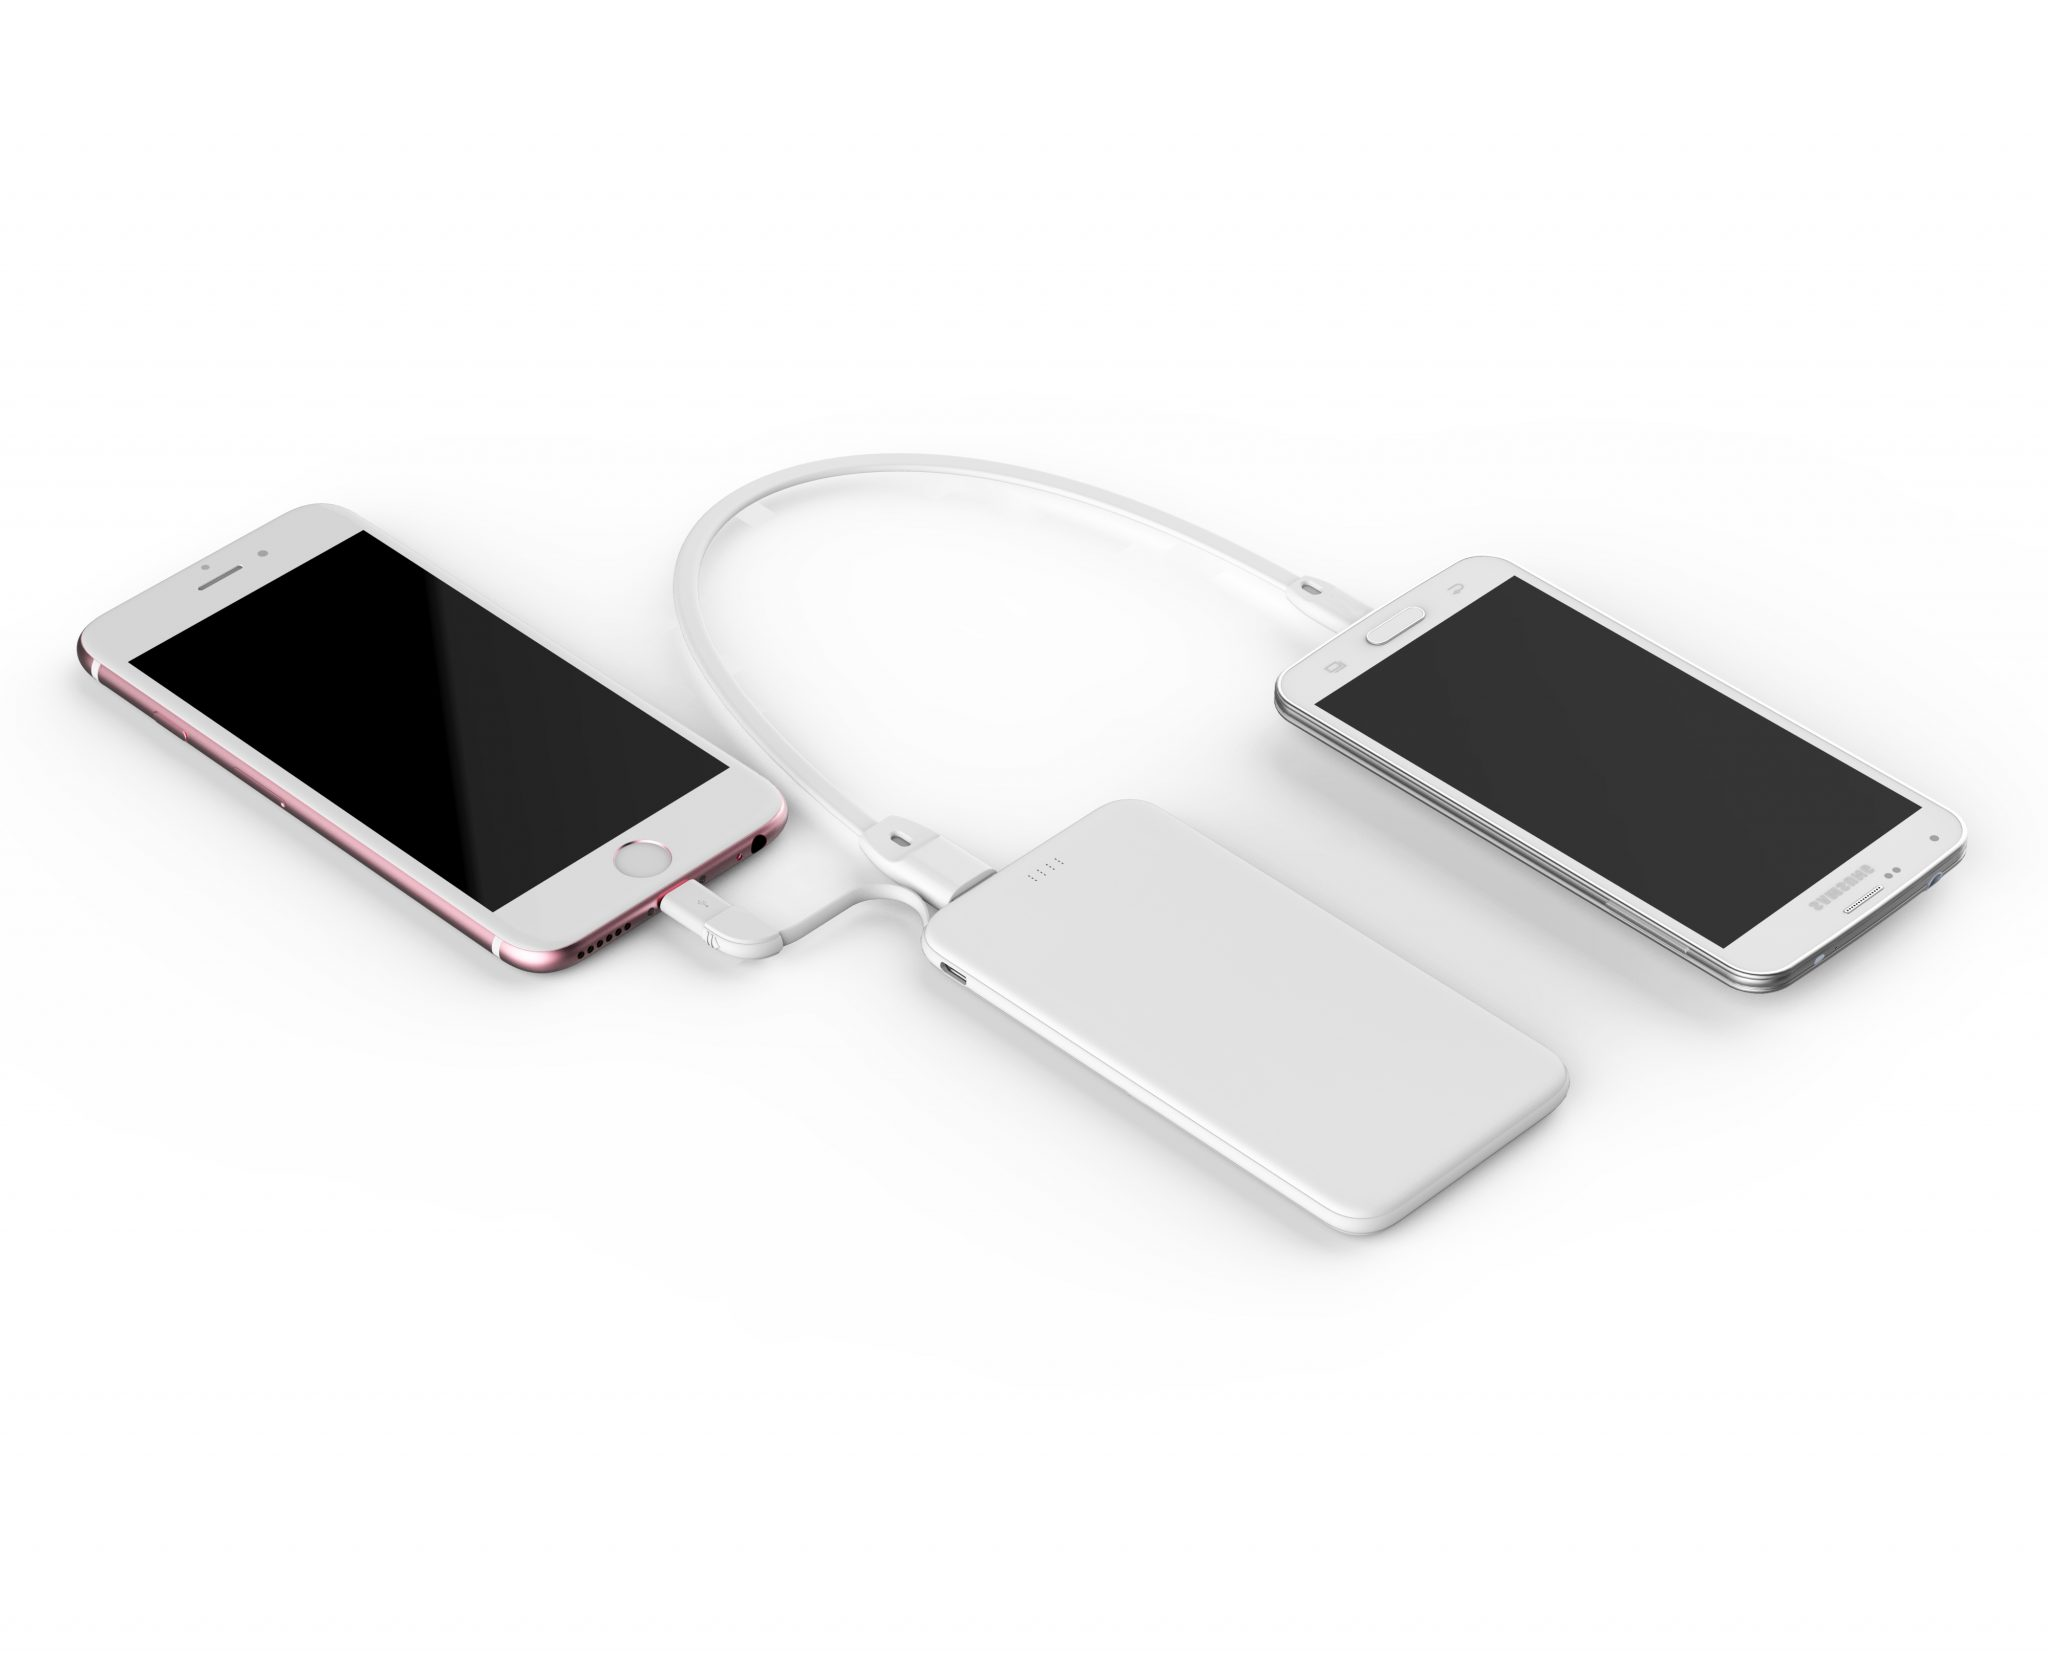 usb power bank for iphone with in-built cable